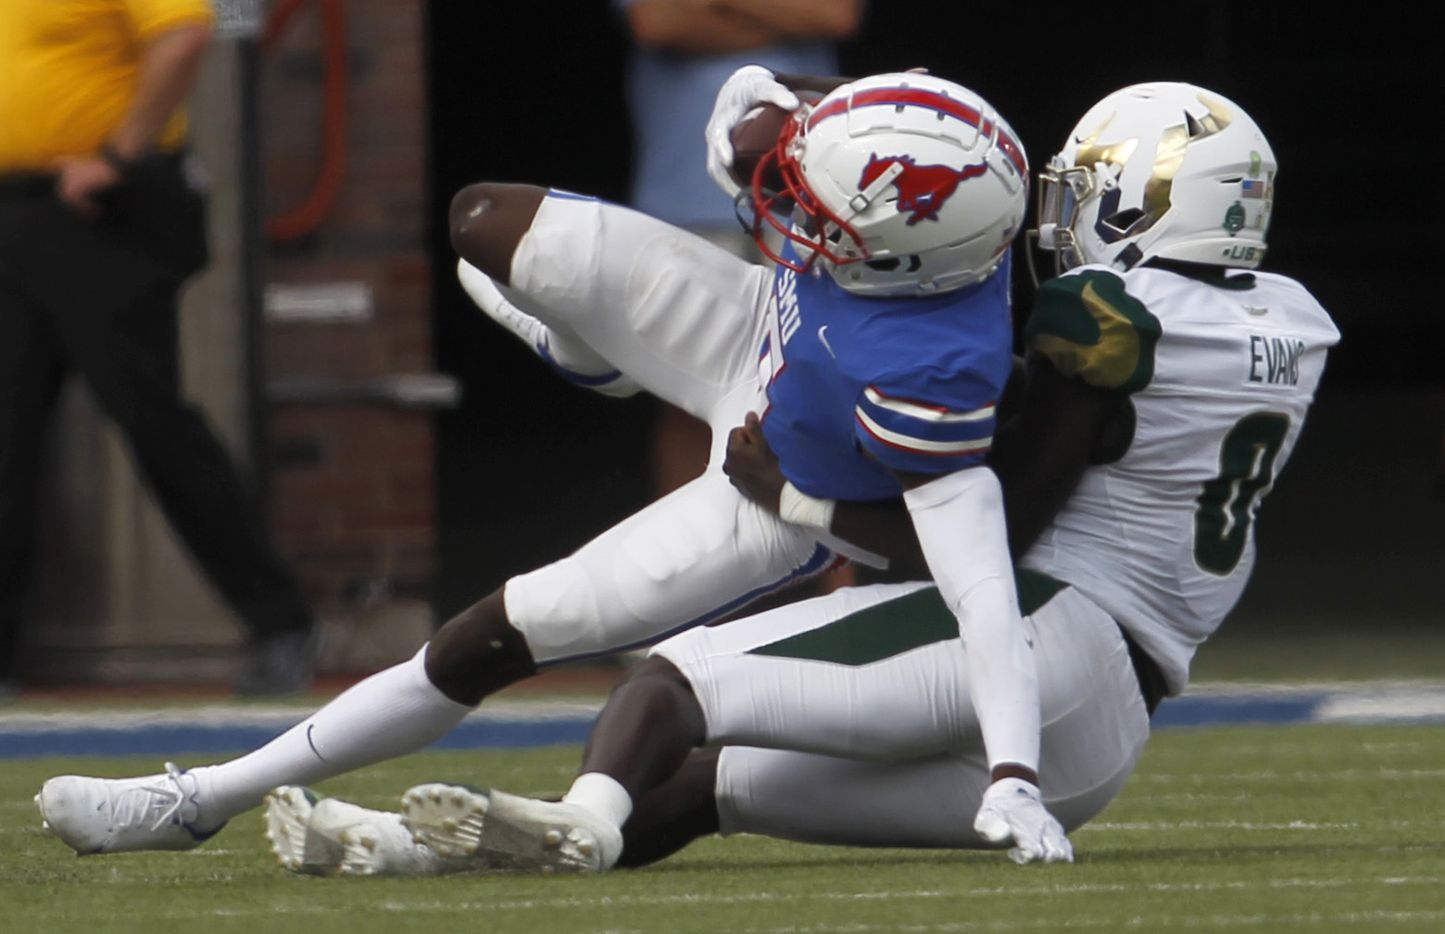 SMU receiver Danny Gray (5), left, gains yardage before he is tackled by South Florida cornerback Daquan Evans (0) following a first quarter reception. The two teams played their NCAA football game at SMU's Ford Stadium in Dallas on October 2, 2021. (Steve Hamm/ Special Contributor)